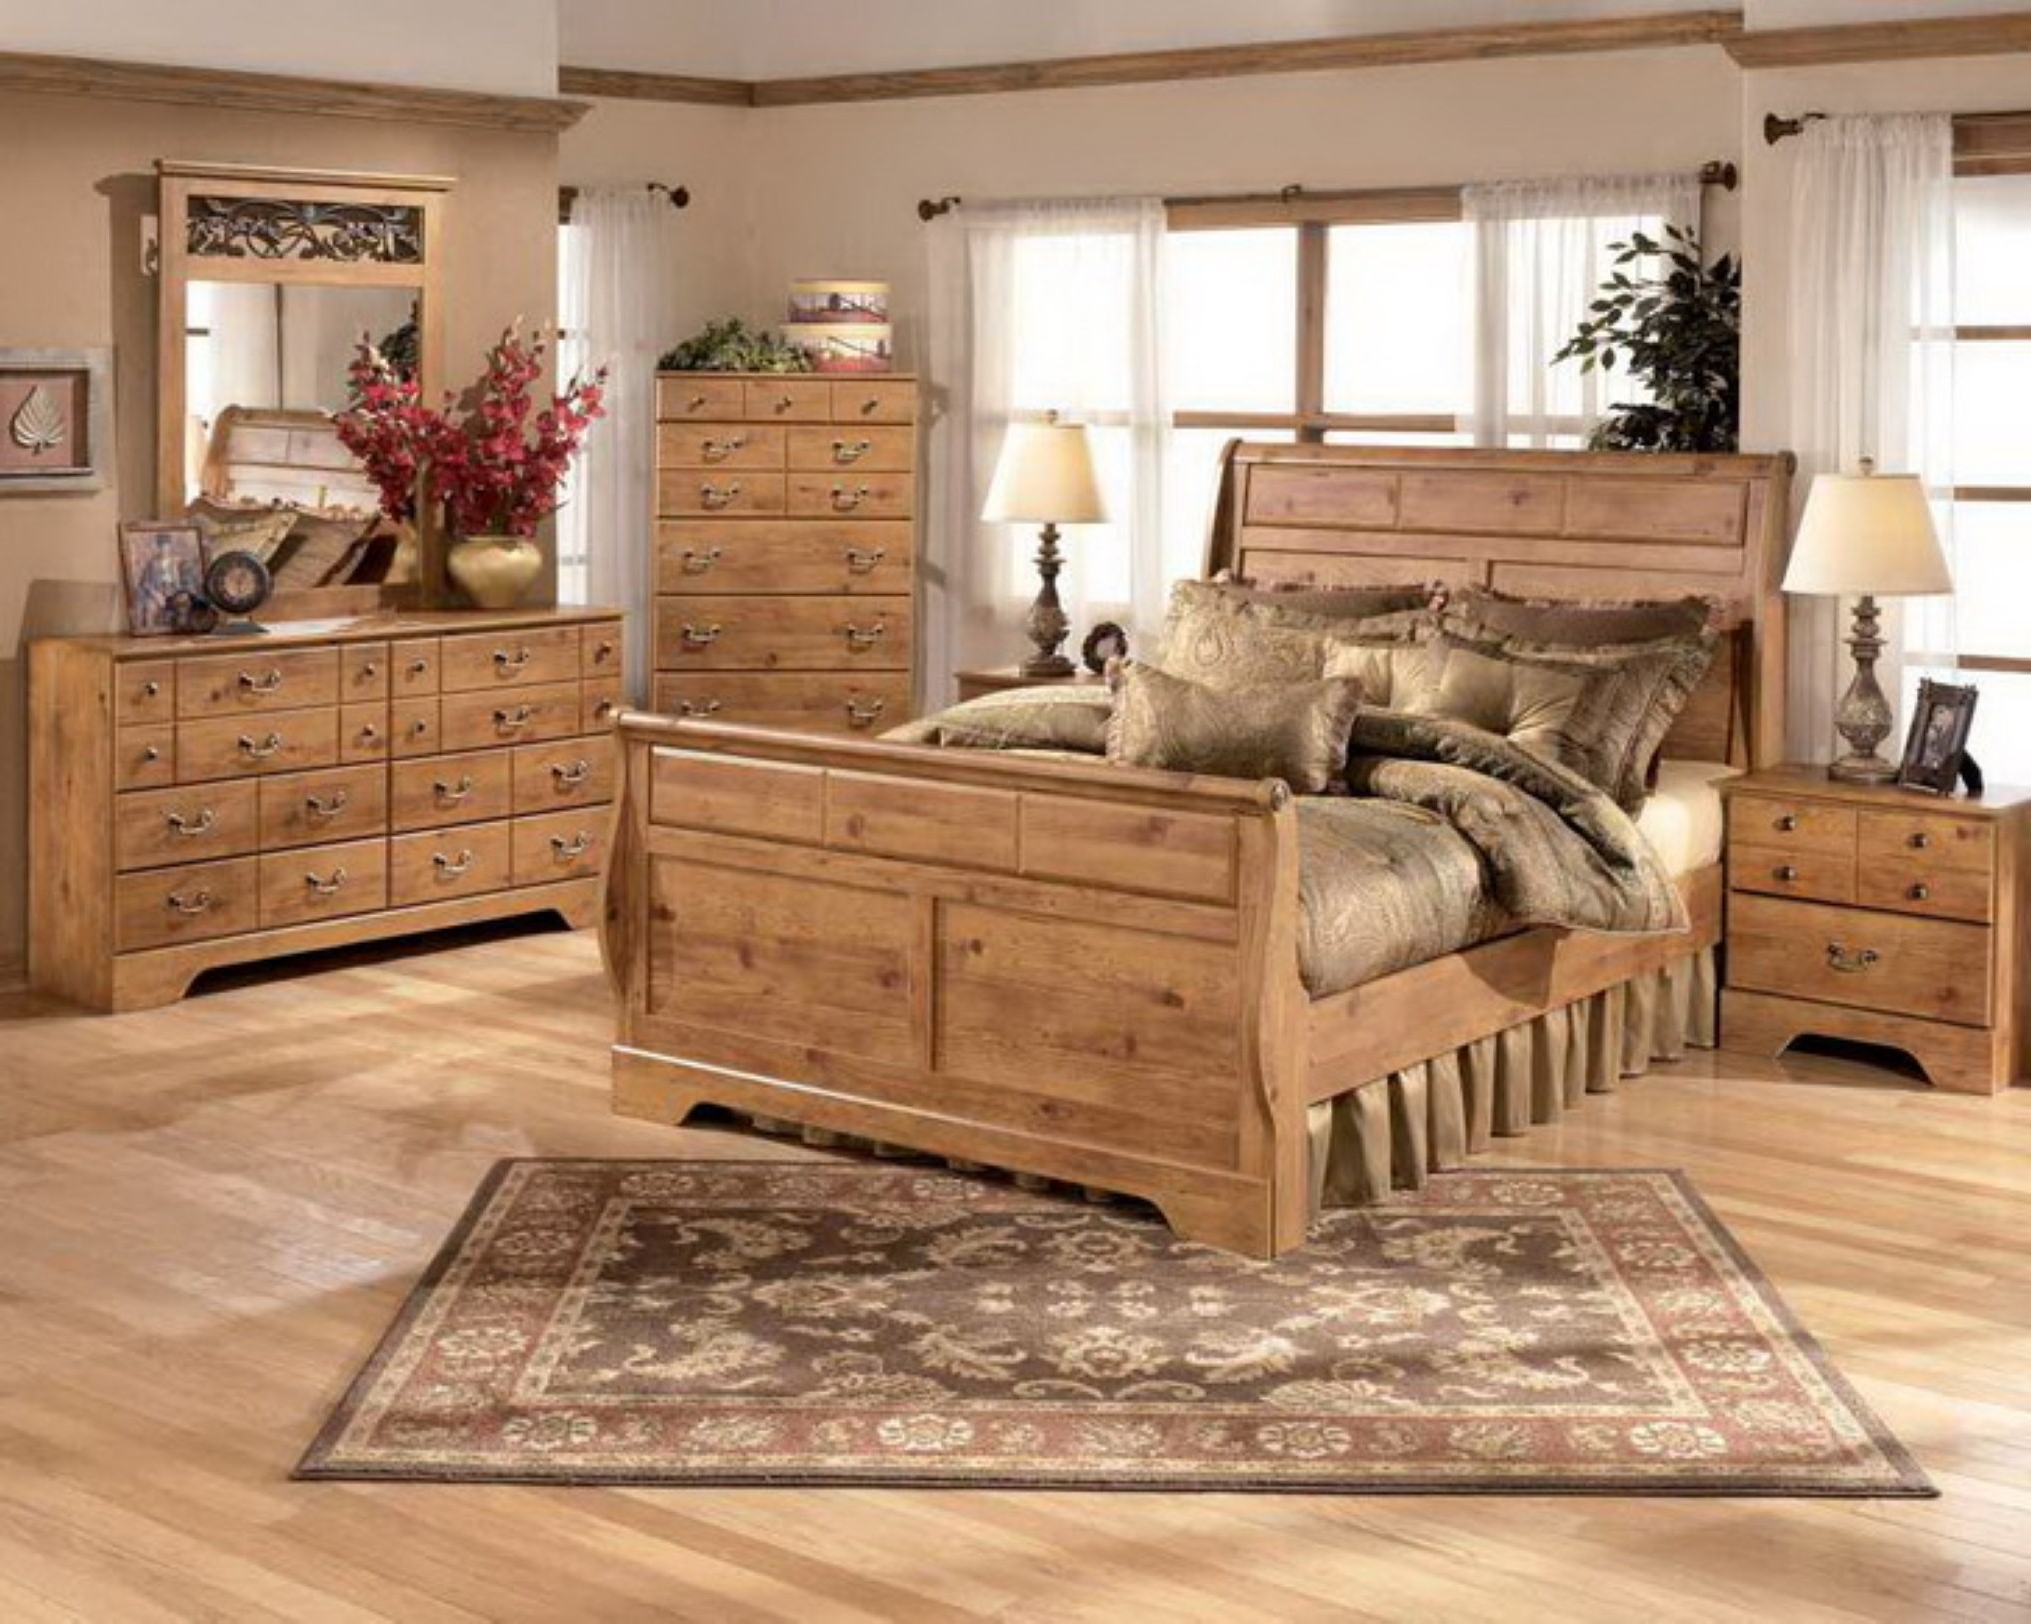 Neat Inspirational Bedroom Furniture As Contemporary Bedroom Furniture As The Artistic Ideas The Inspiration Room To Renovation Bedroom You (Image 3 of 21)